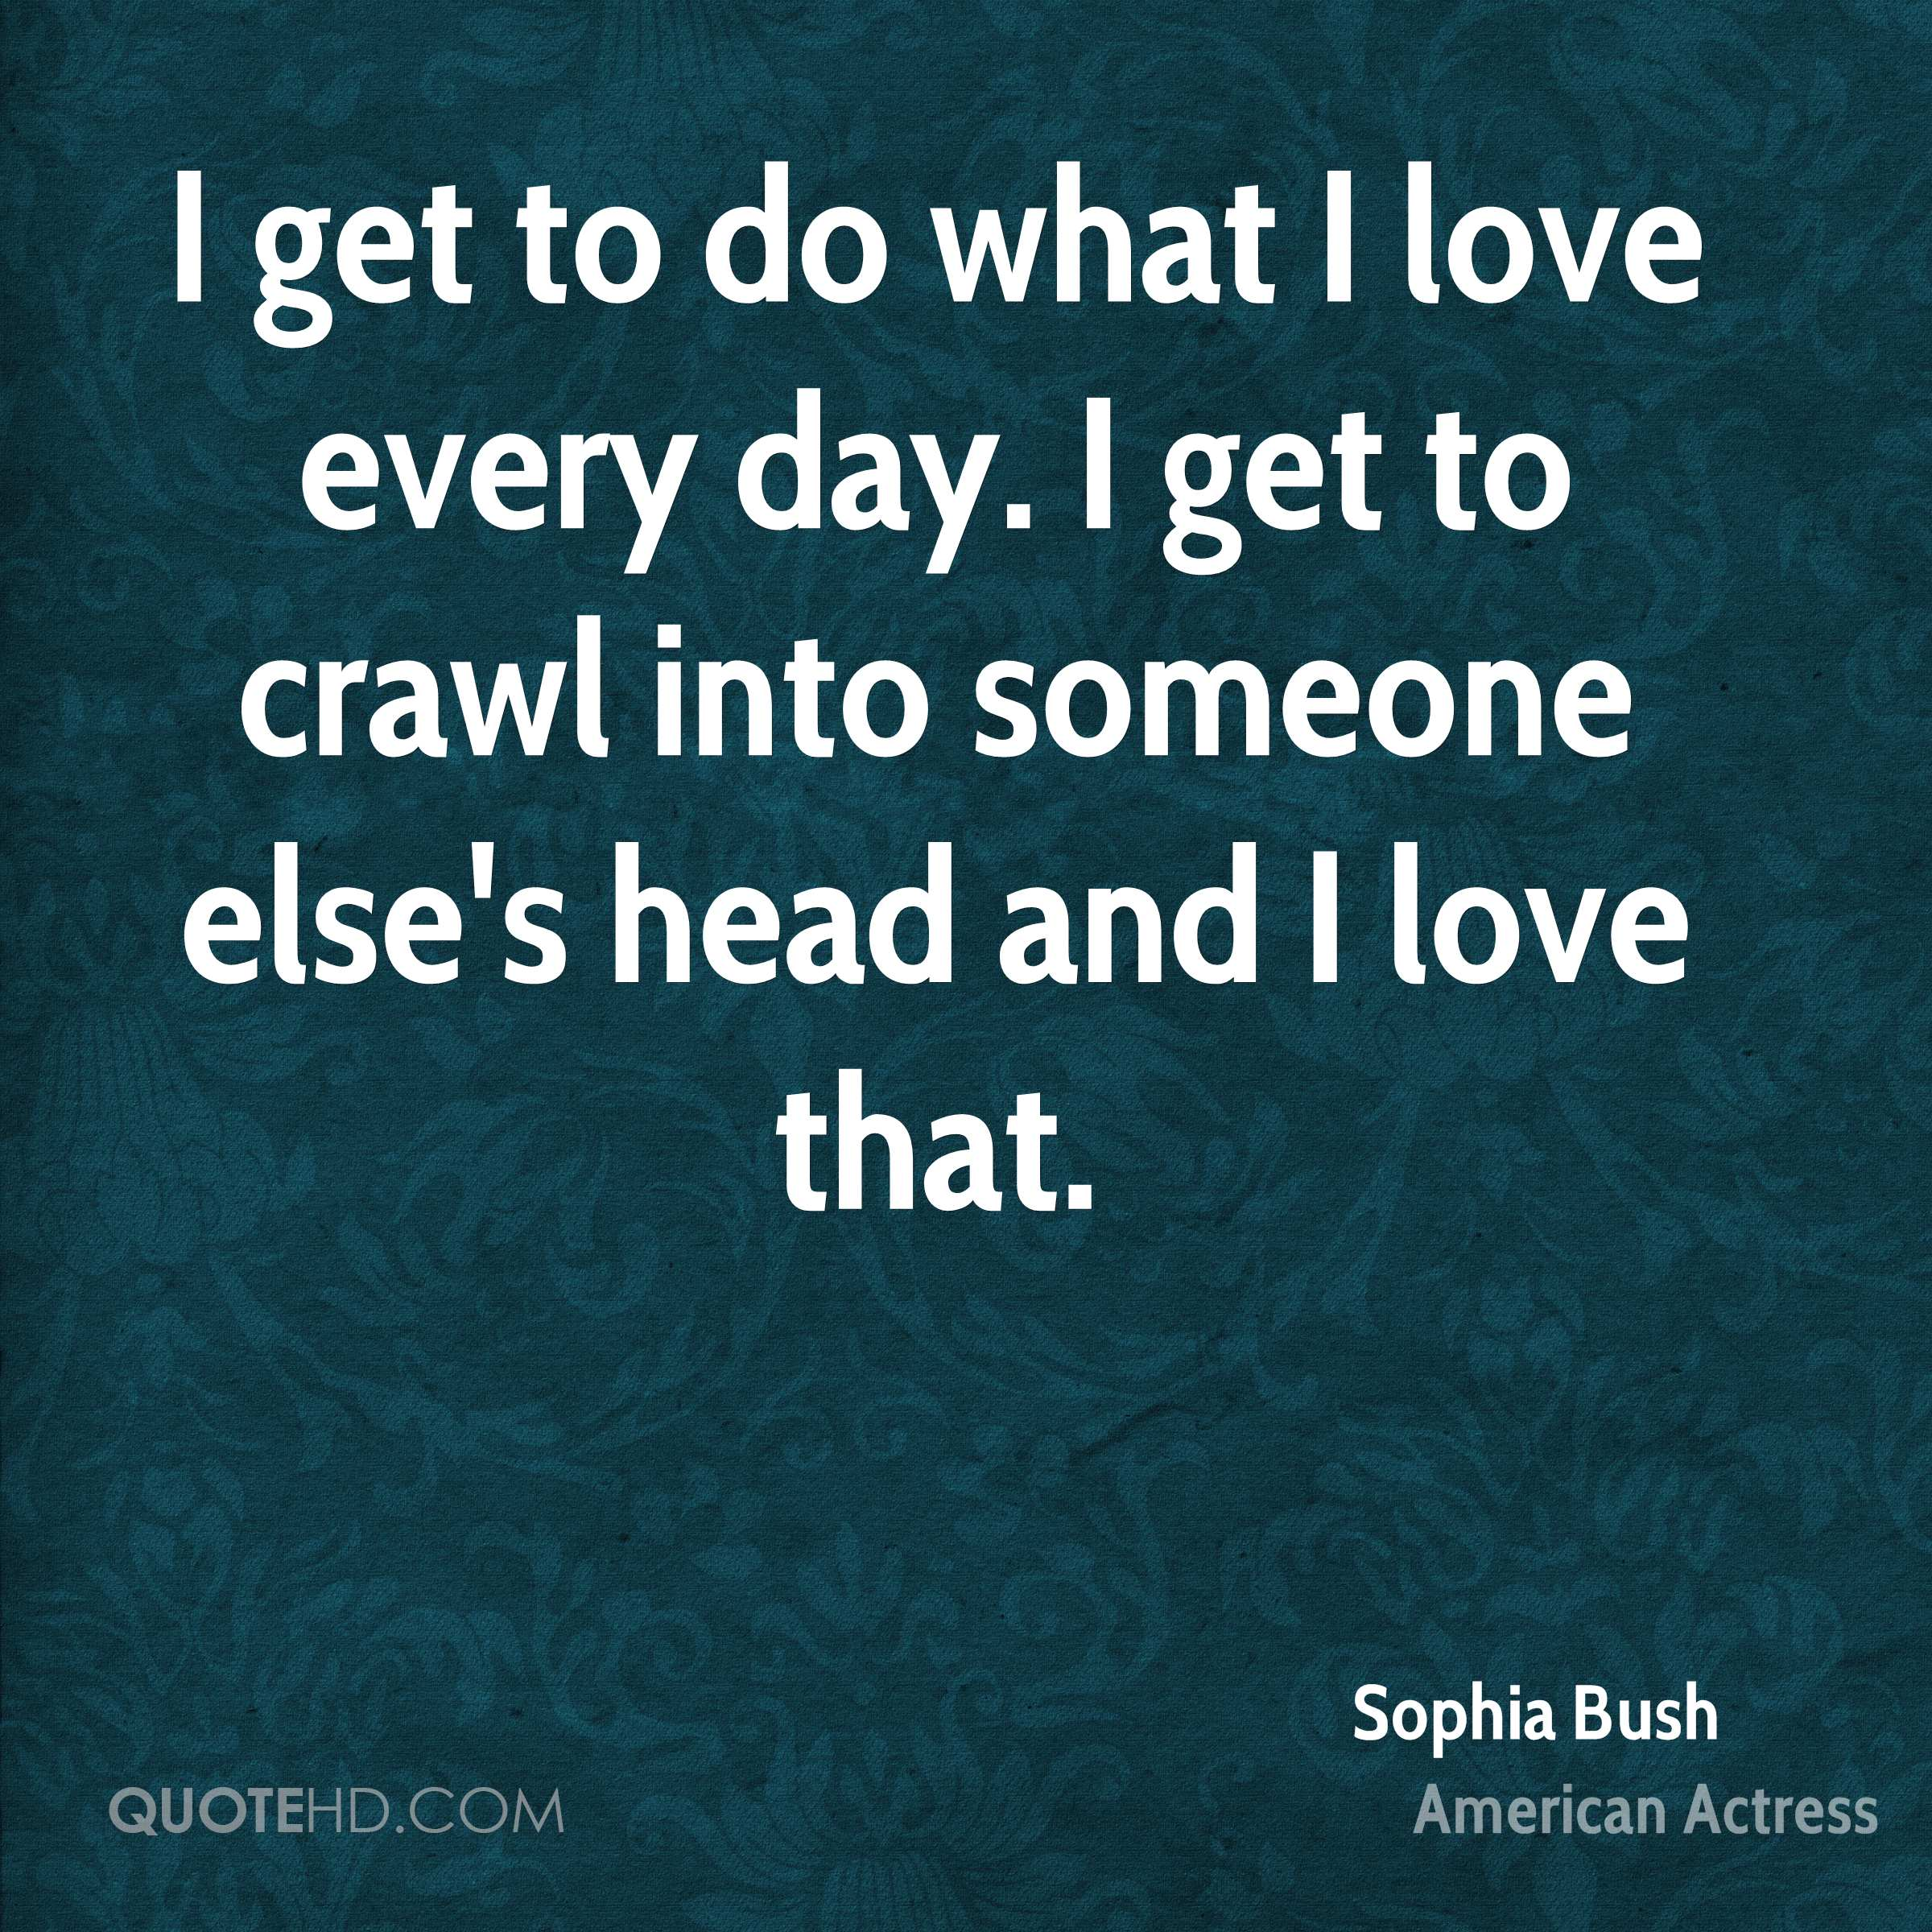 I get to do what I love every day. I get to crawl into someone else's head and I love that.